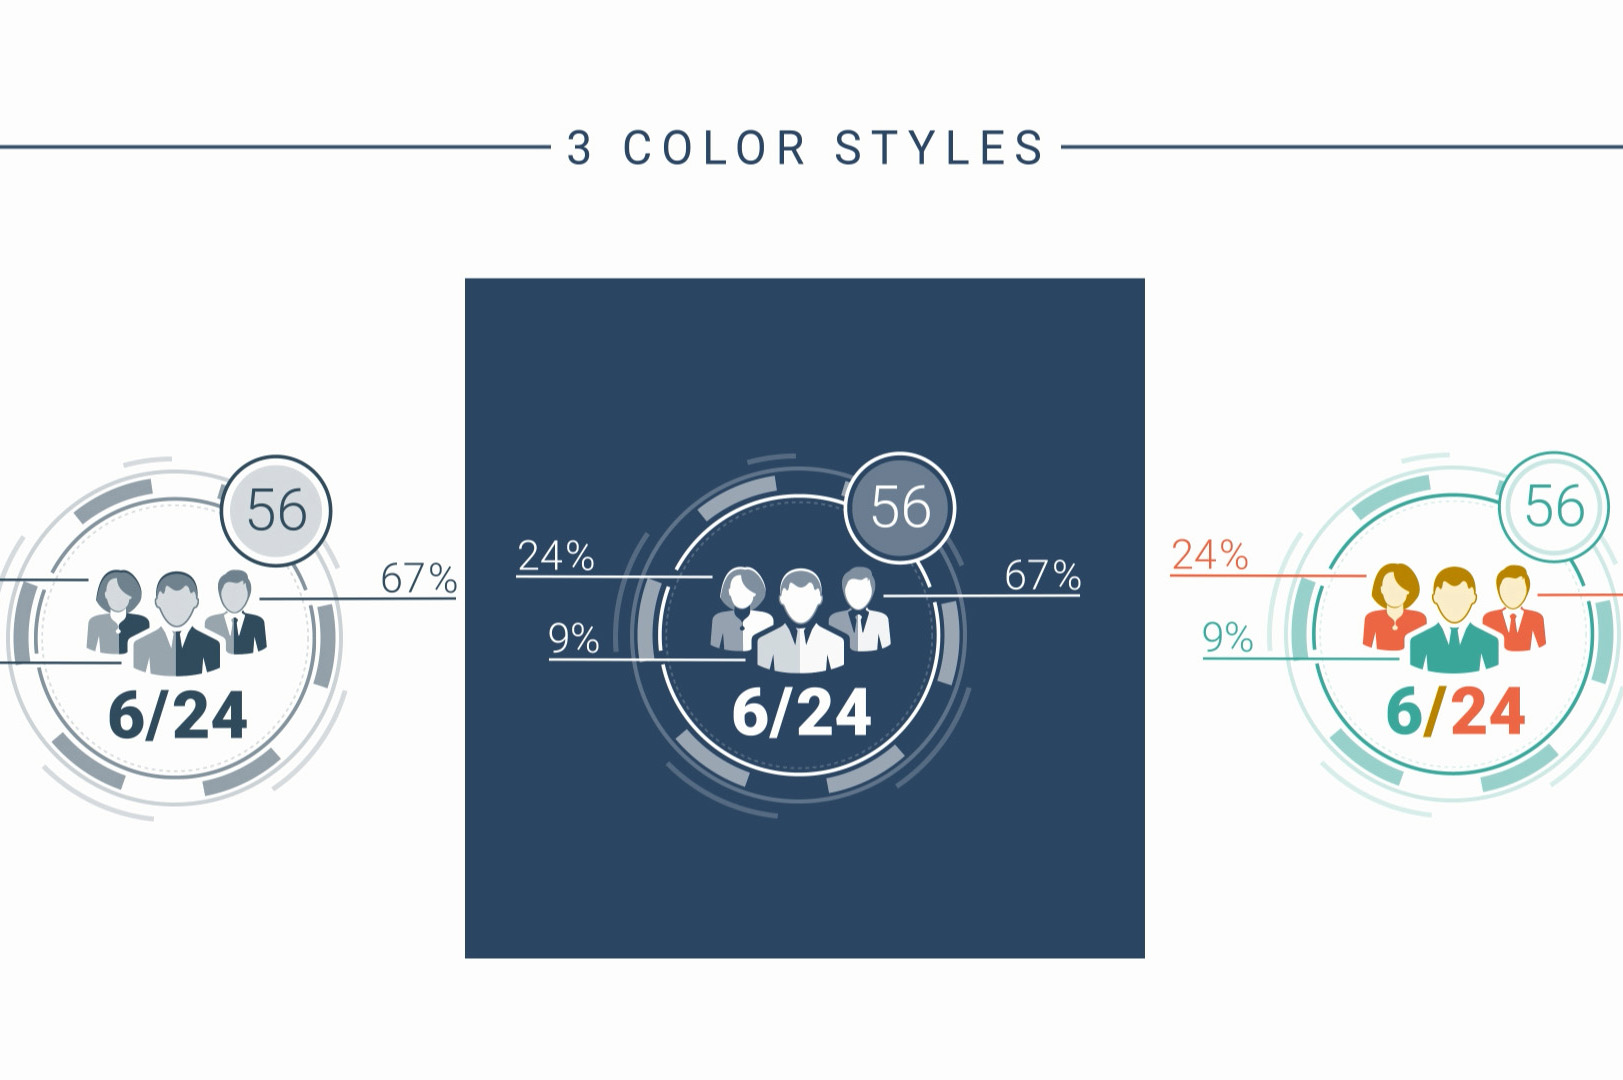 color styles for animated business infographic elements